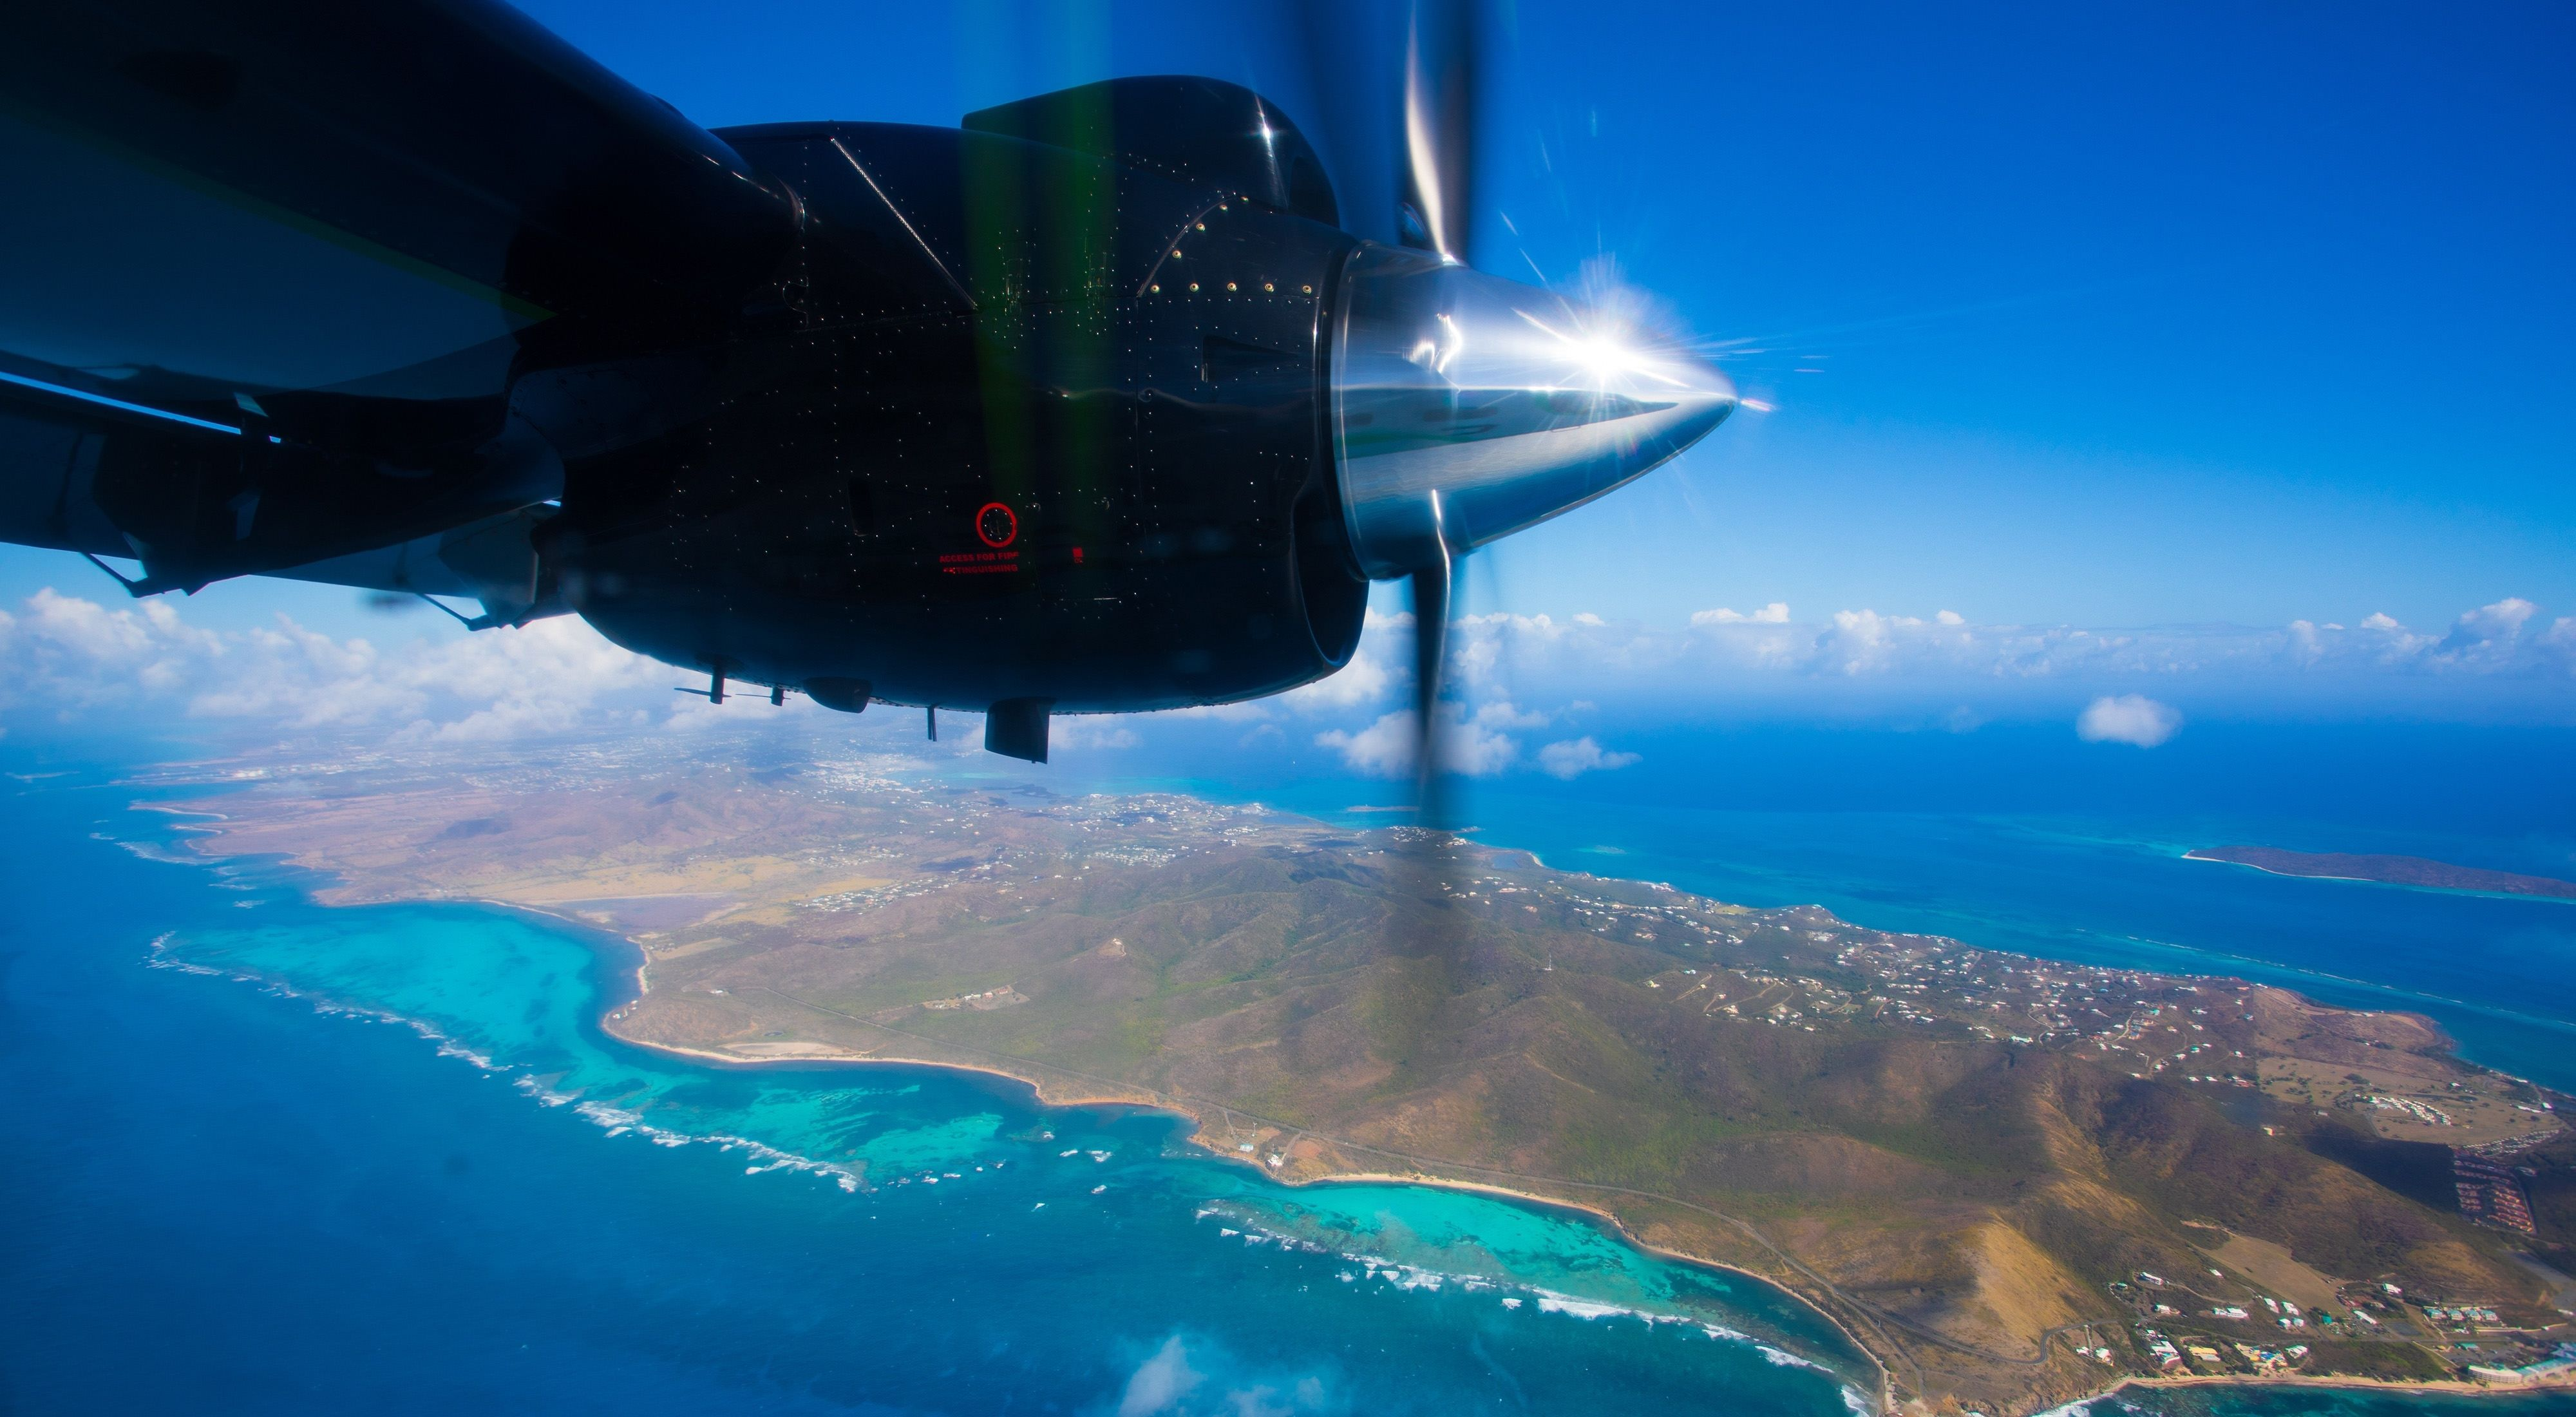 A view of the underbelly of an aerial imaging plane flying over an island with hills and ocean waves in sight.